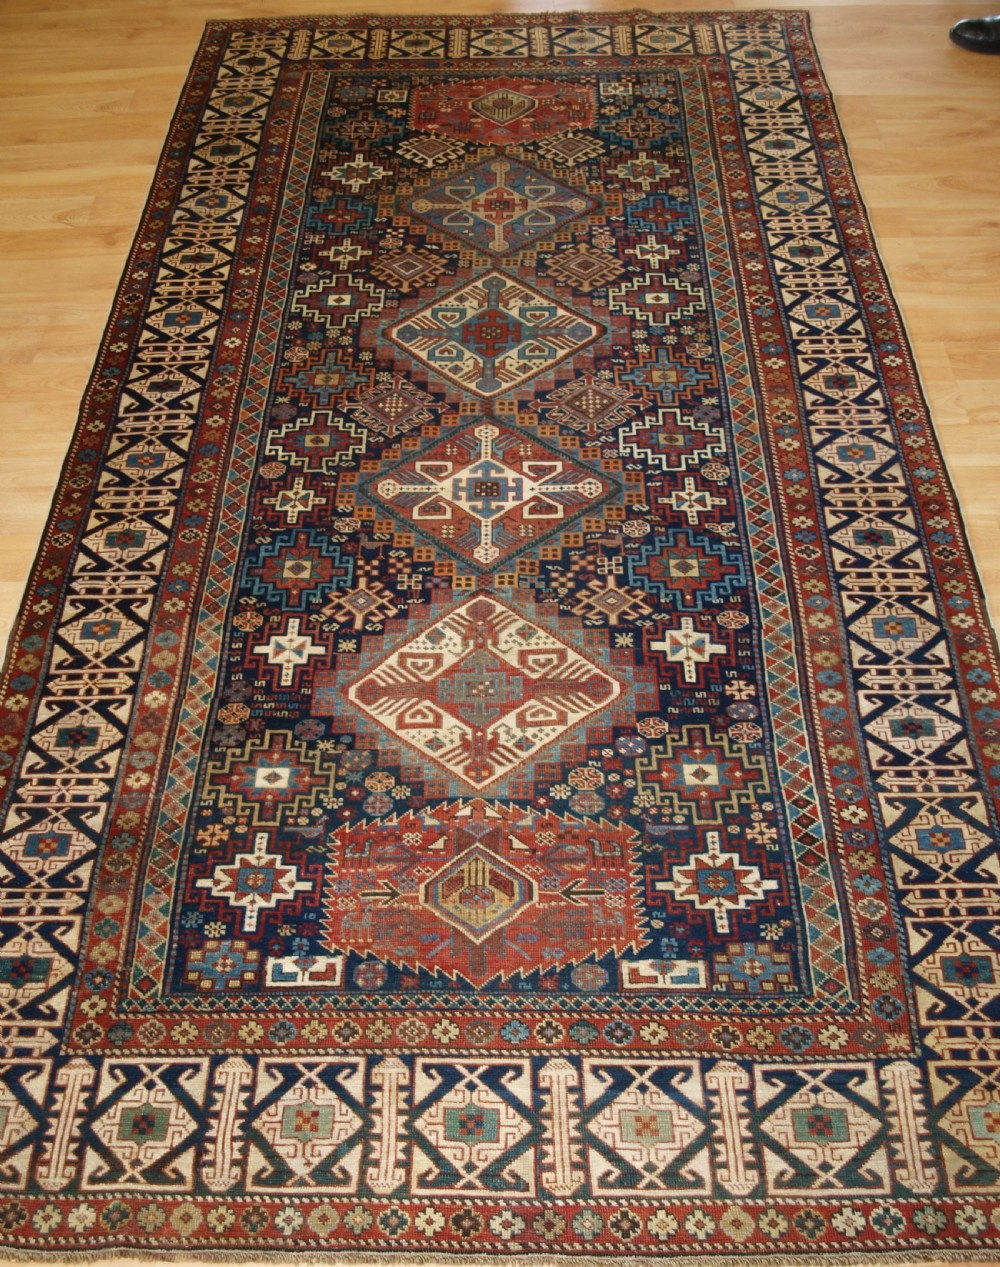 antique caucasian shirvan rug superb design with kufic border circa 1880